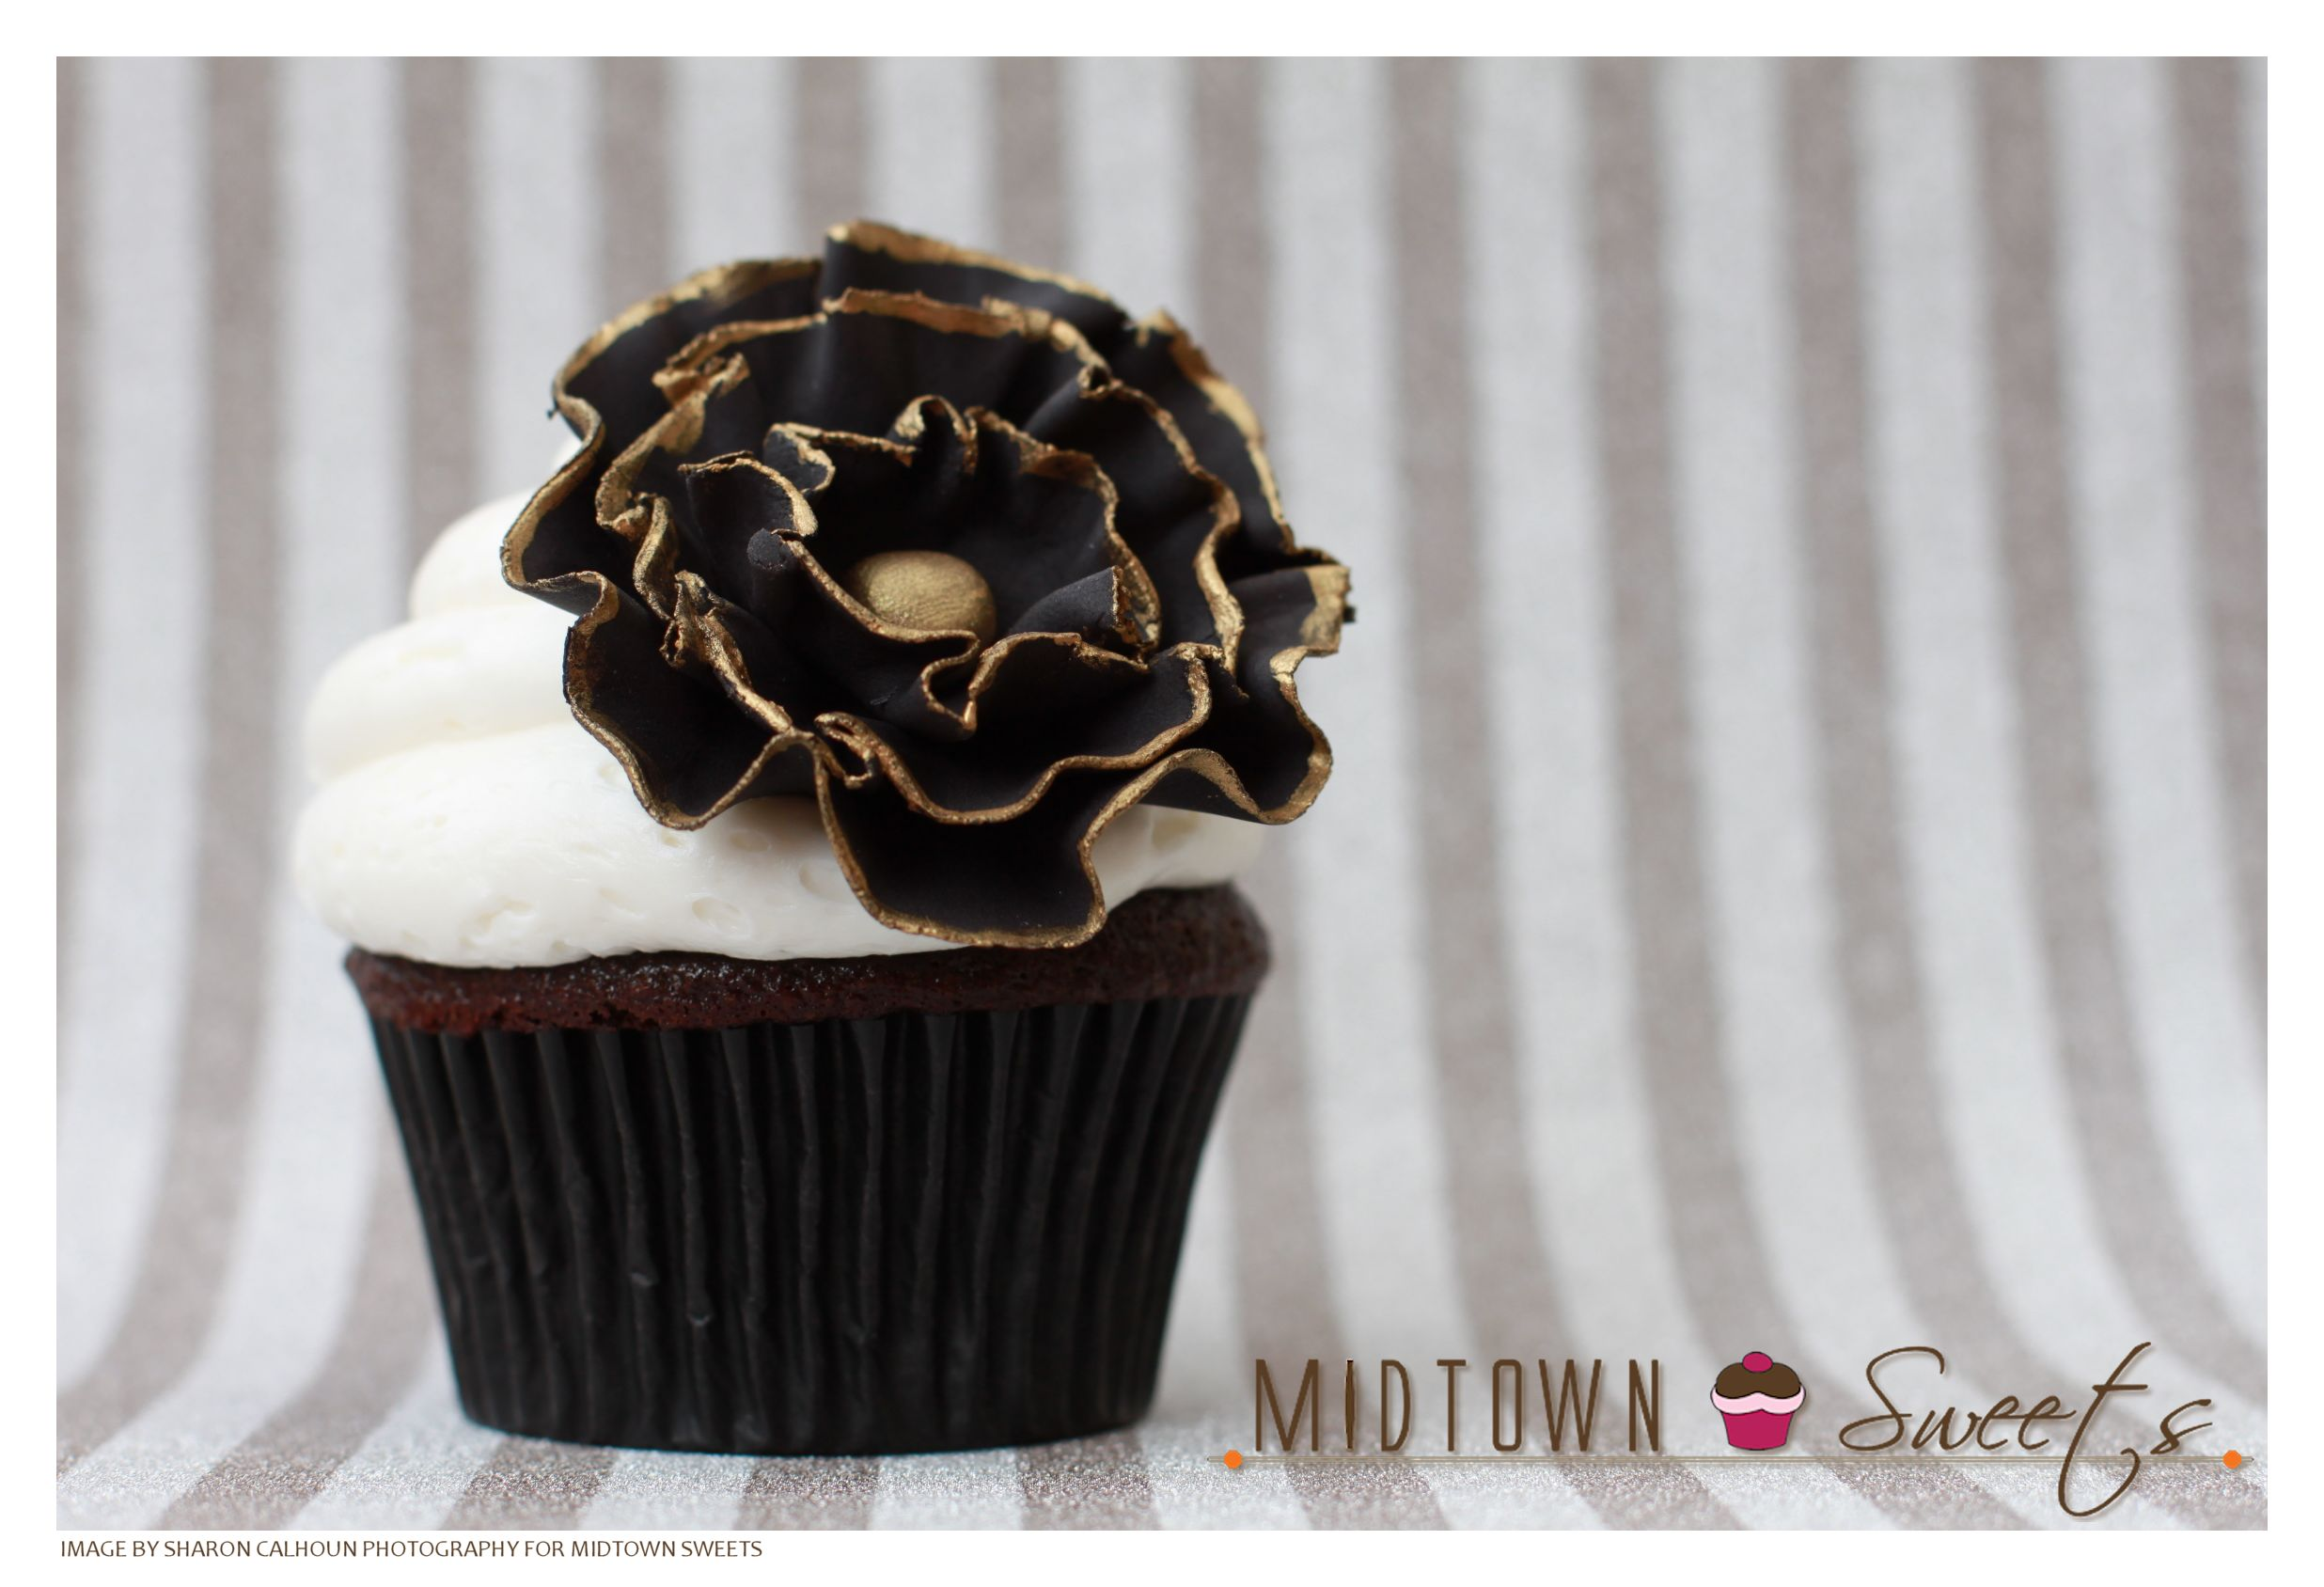 Midtown Sweets Black Amp White Flower Cupcakes With Gold Trim